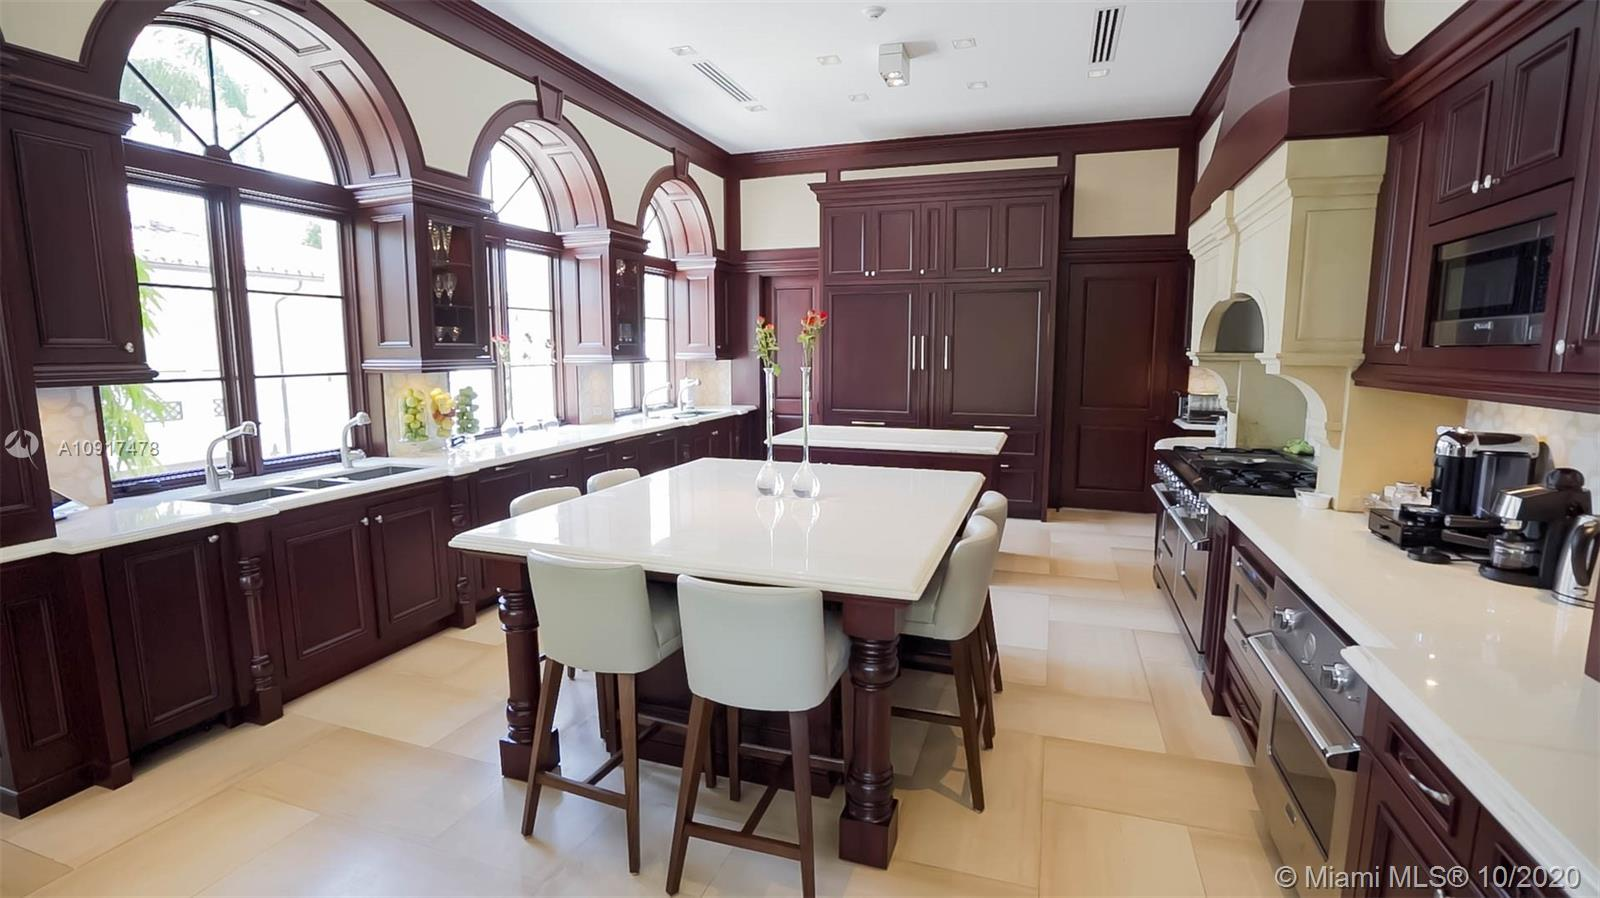 300 Costanera rd- coral-gables-fl-33143-a10917478-Pic13